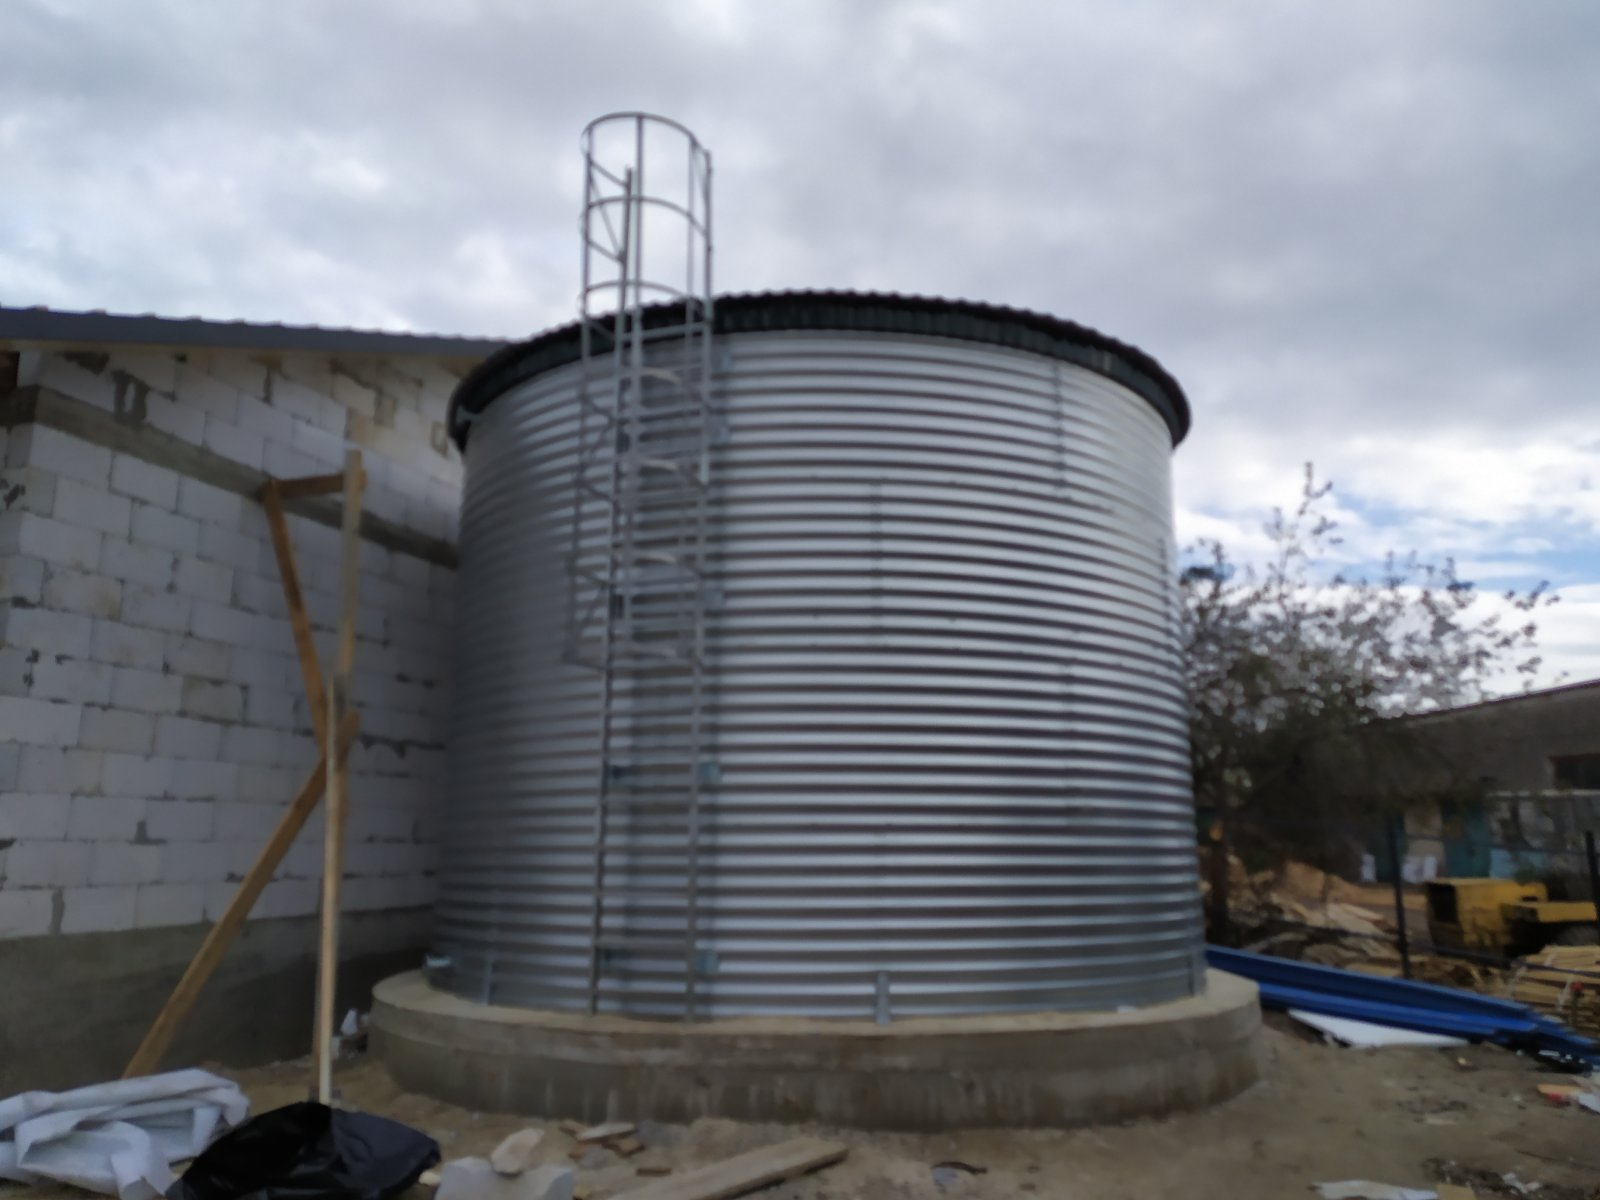 Fire tank for water supply with a volume of 150 m3.